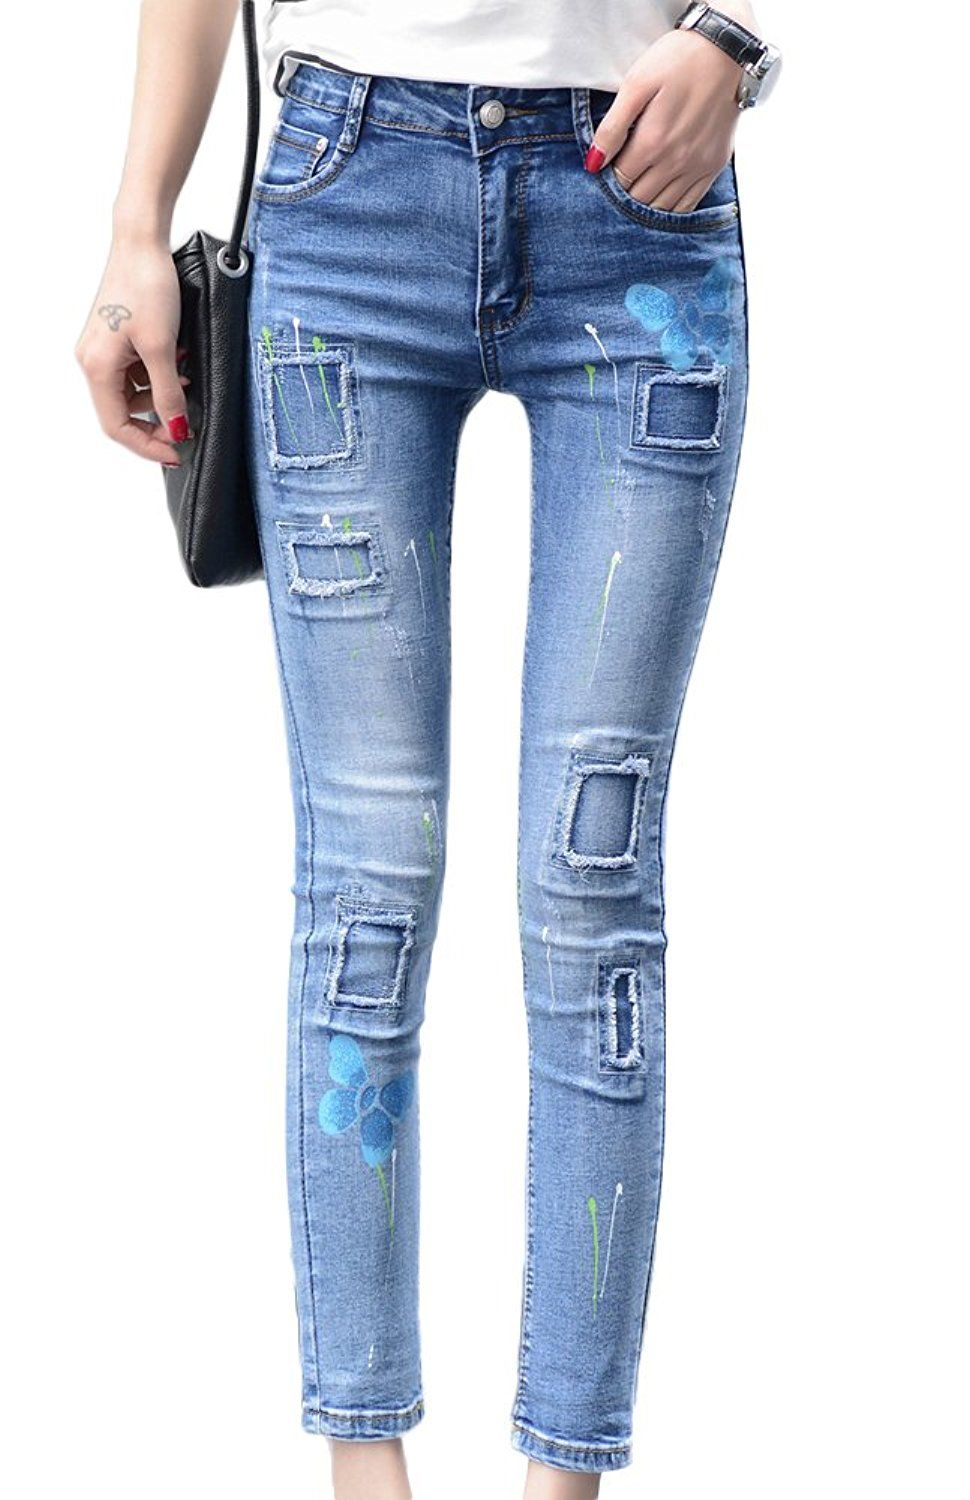 b49e24d0661 Chickle Women s Cotton Print Ripped Stretch Midrise Ankle Skinny Jeans     This is an Amazon Affiliate link. Click image for more details.